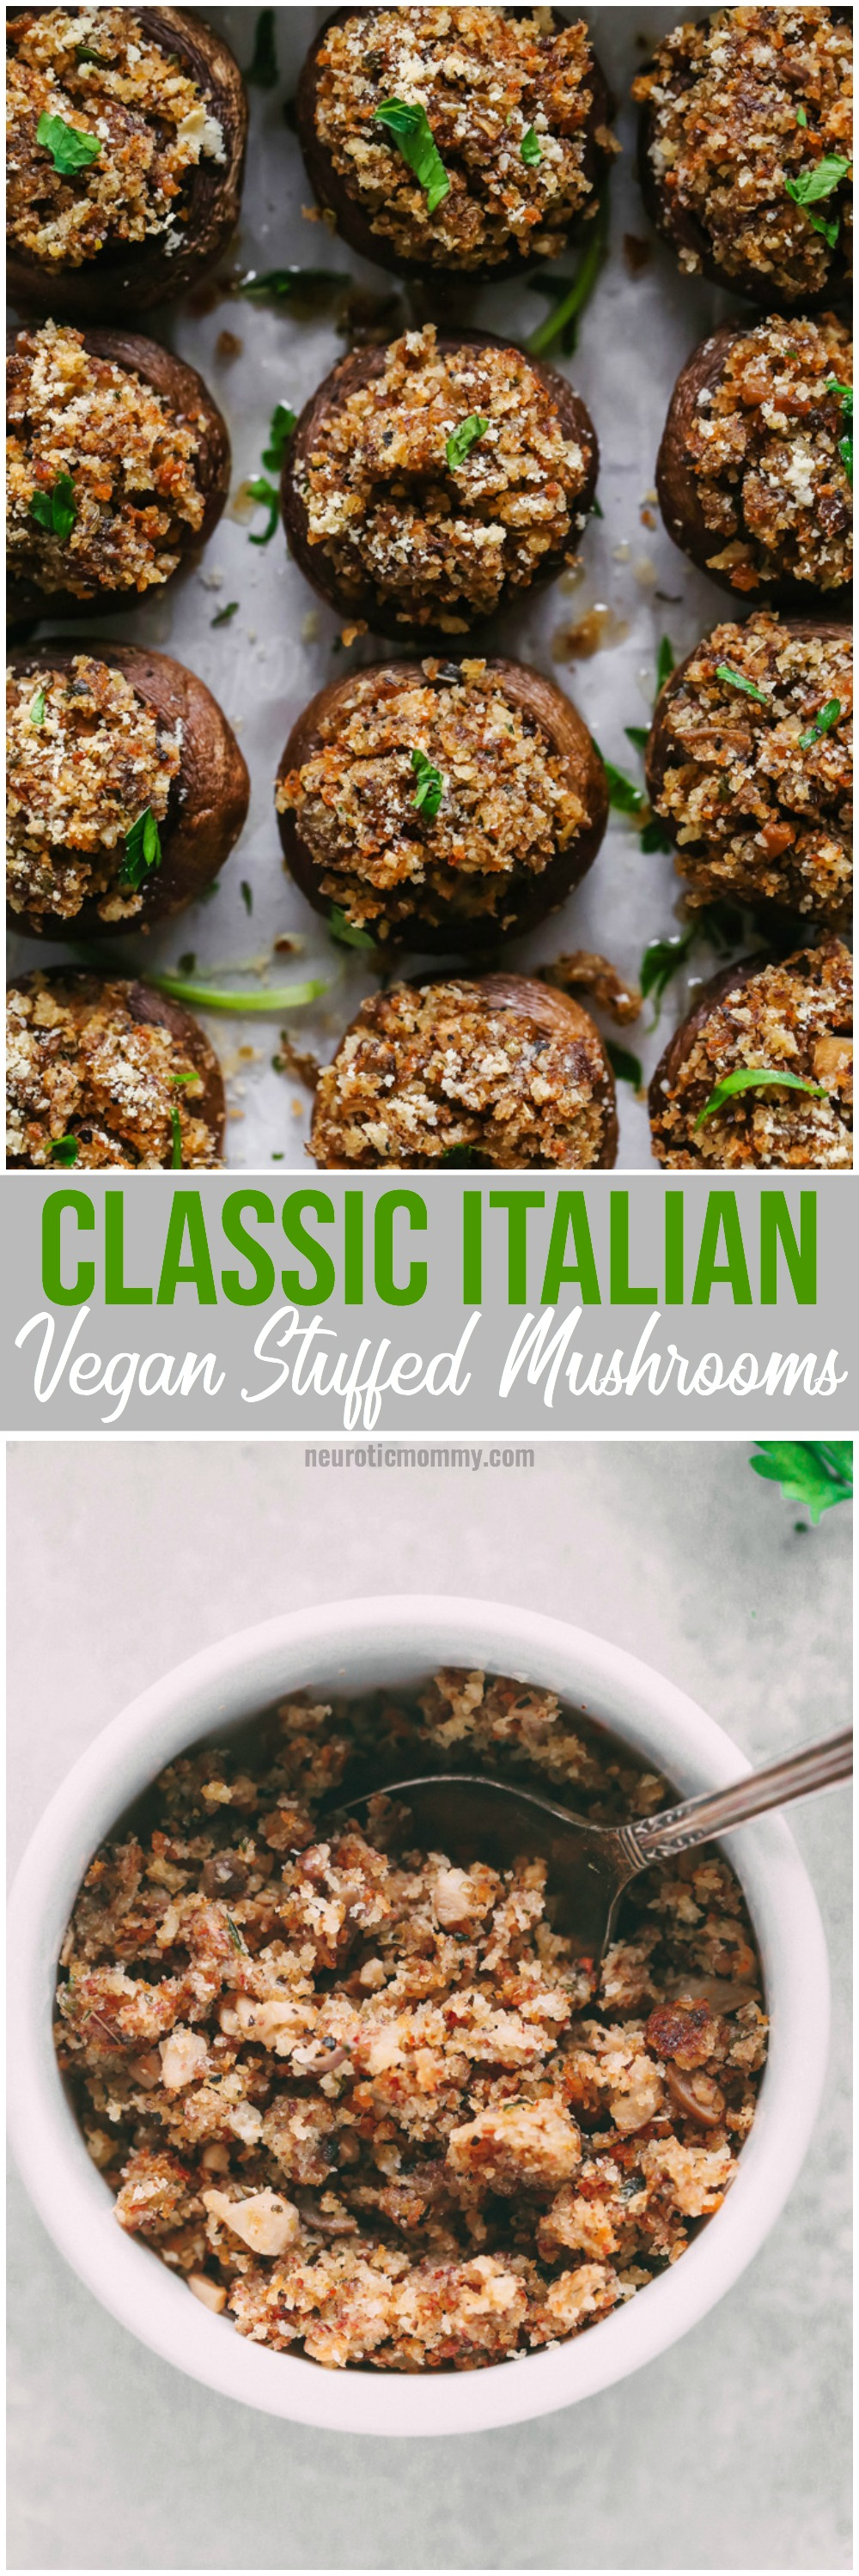 Classic Italian Vegan Stuffed Mushrooms - Filled with a stuffing full of flavor and spices and baked to perfection. These are a Thanksgiving must have. NeuroticMommy.com #vegan #thanksgiving